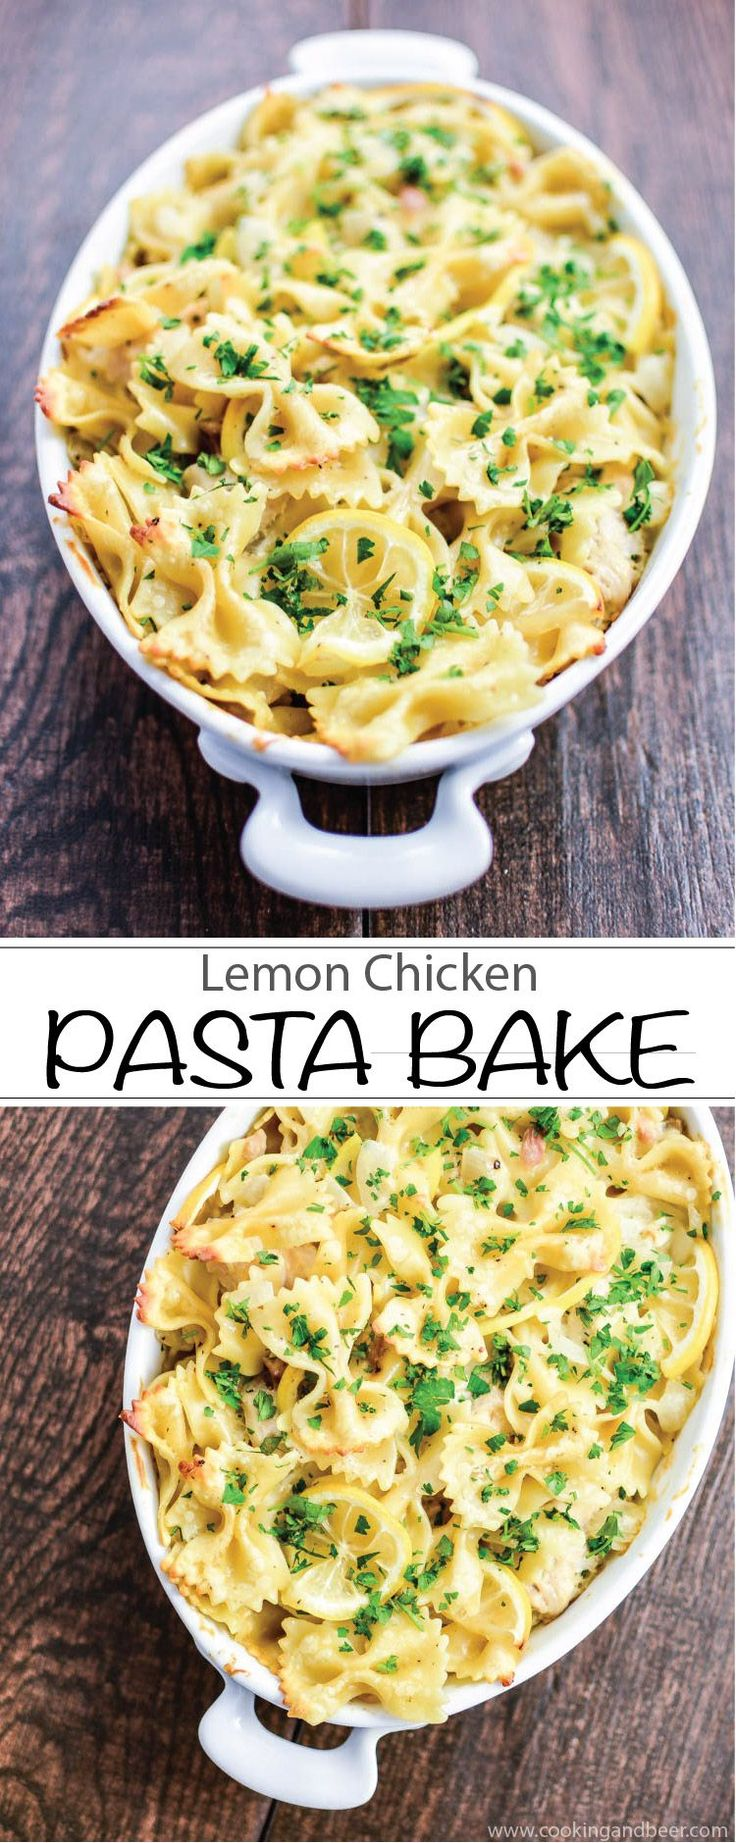 Lemon Chicken Pasta Bake is the perfect casserole for dinner! Recipe via www.cookingandbeer.com